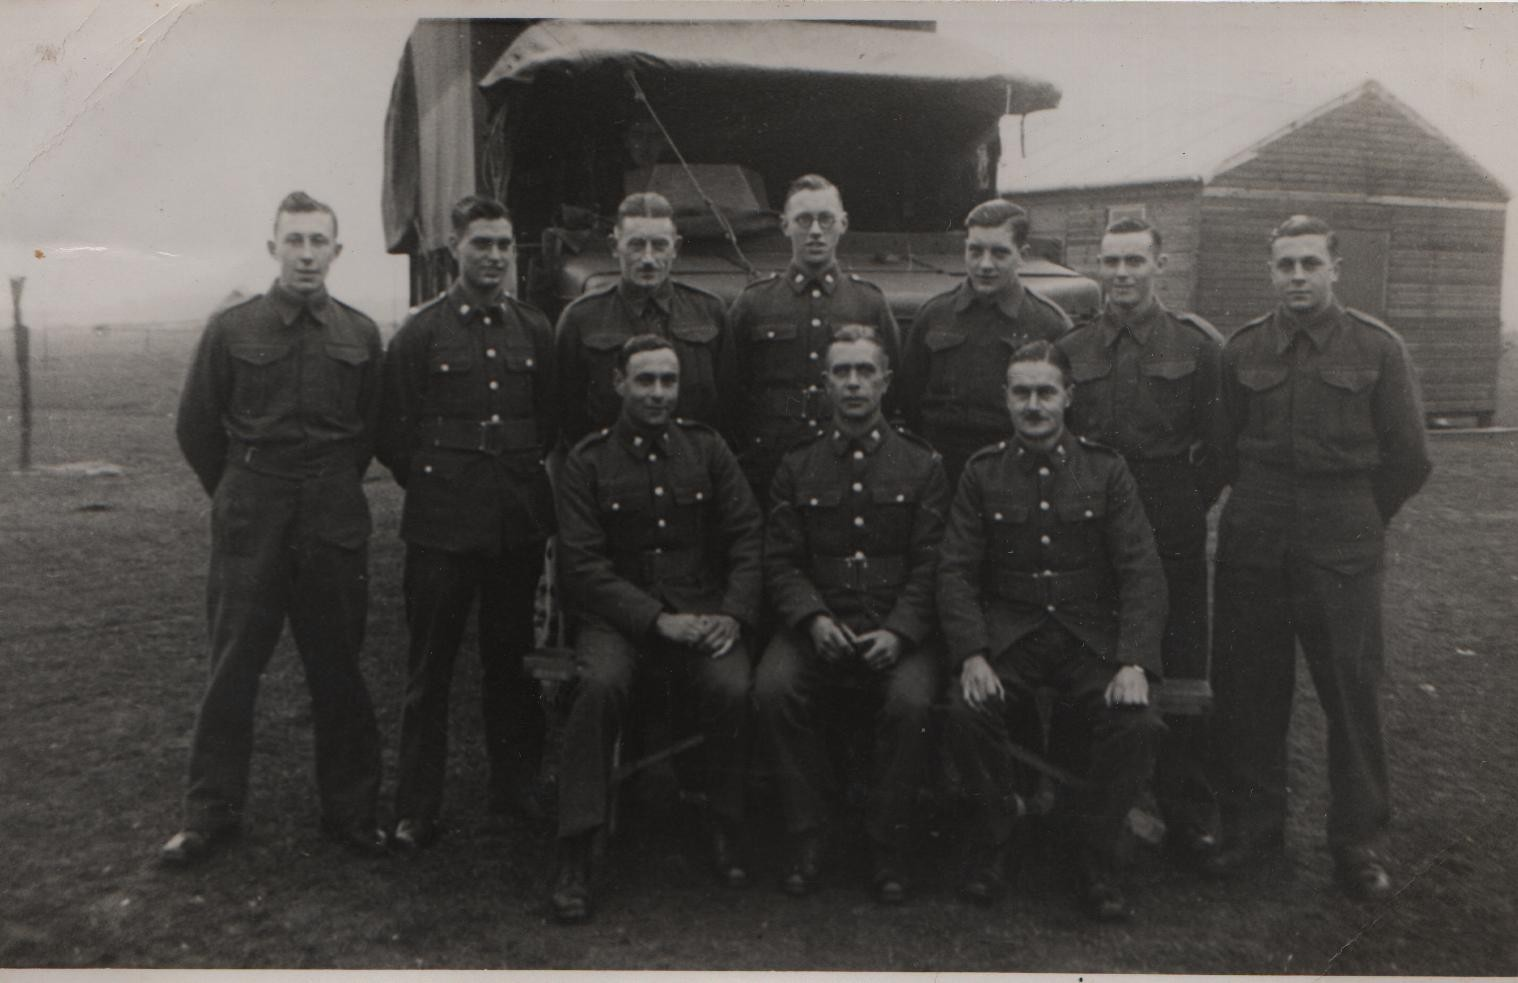 1939 Burnham Market 2nd/6th Bttn Essex Regiment Territorials: DL back centre